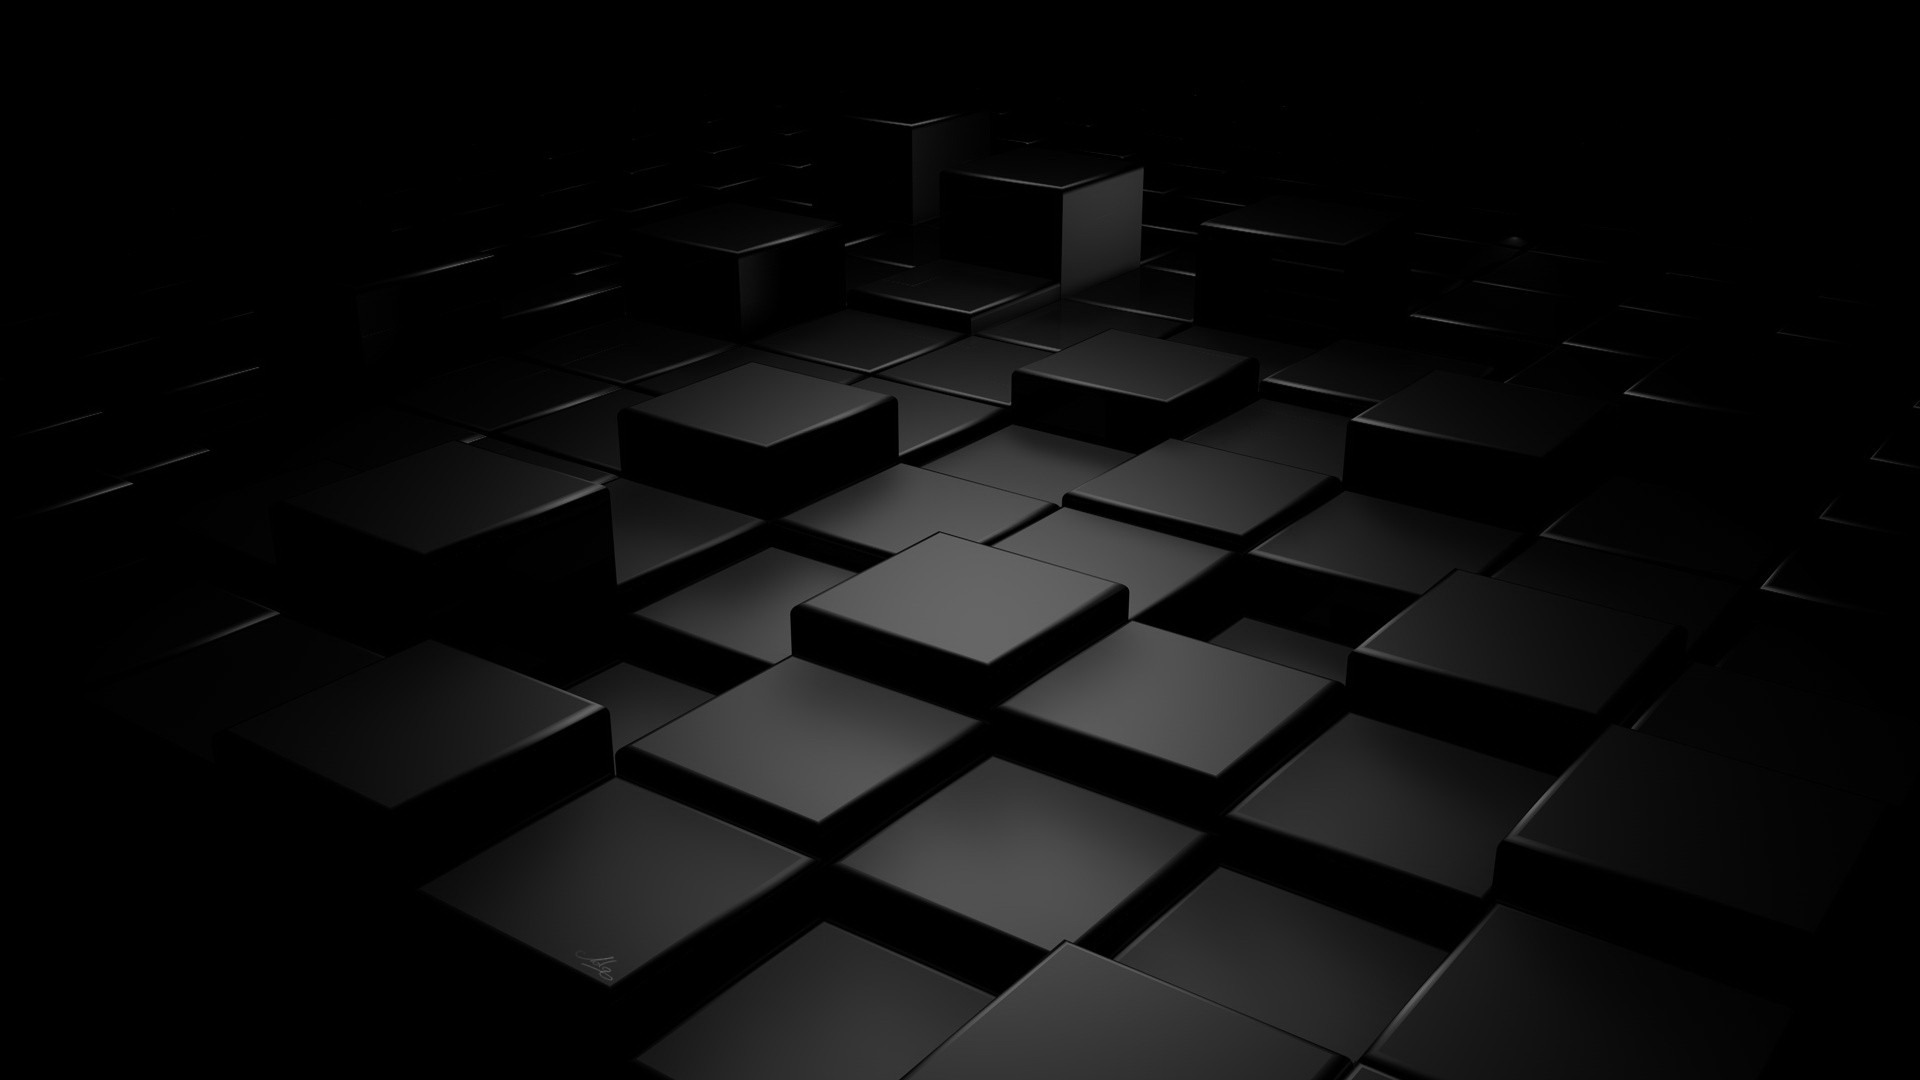 3d wallpaper 1920x1080 35160 for Black 3d wallpaper